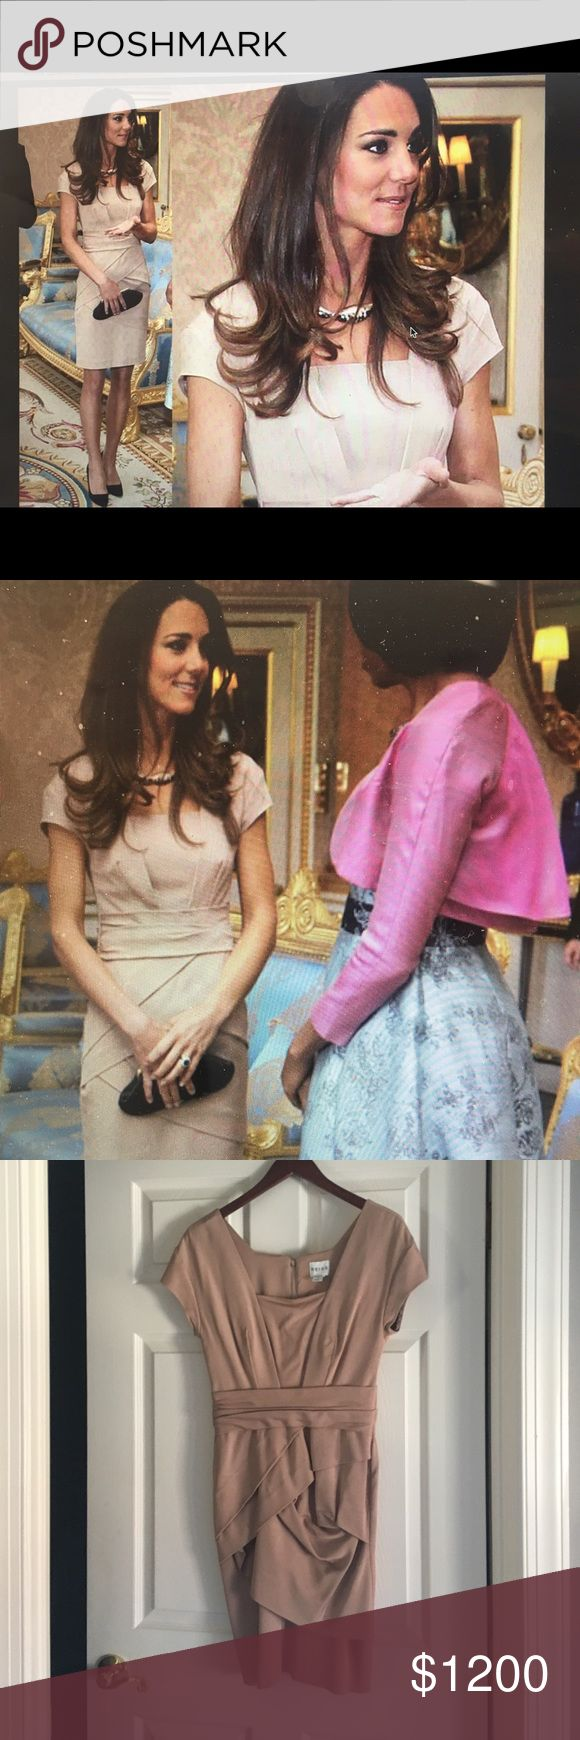 Reiss nude cocktail dress worn by kate middleton when meeting the Obamas in 2011 Reiss Dresses Mini